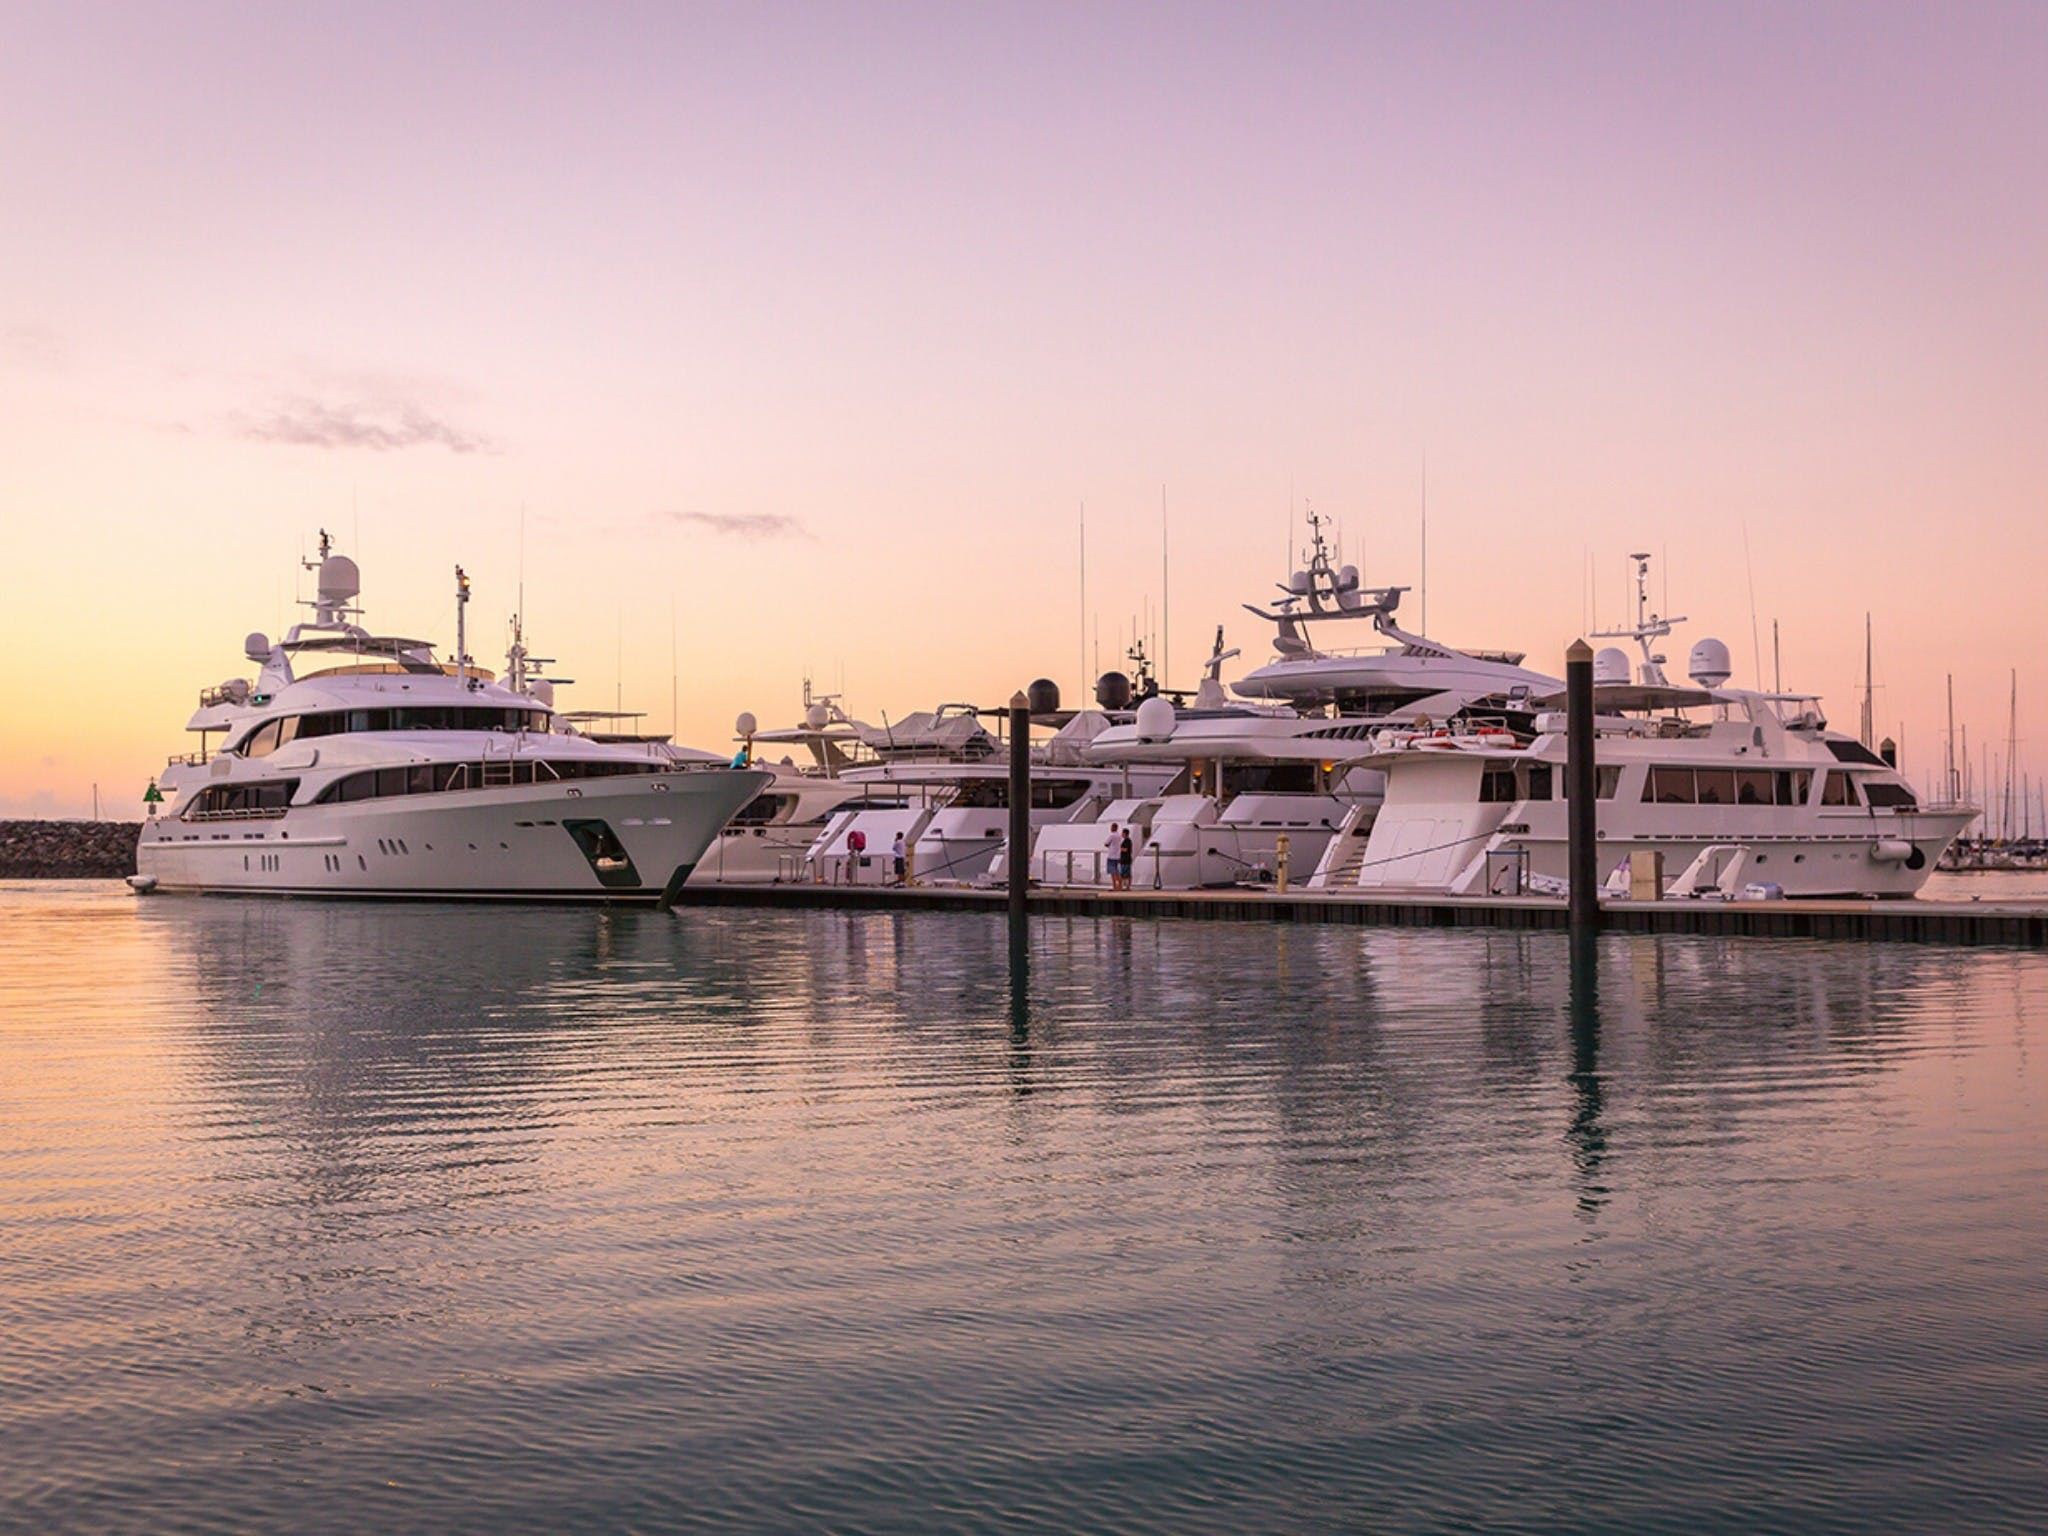 Australian Superyacht Rendezvous - Great Barrier Reef edition - Accommodation Cairns